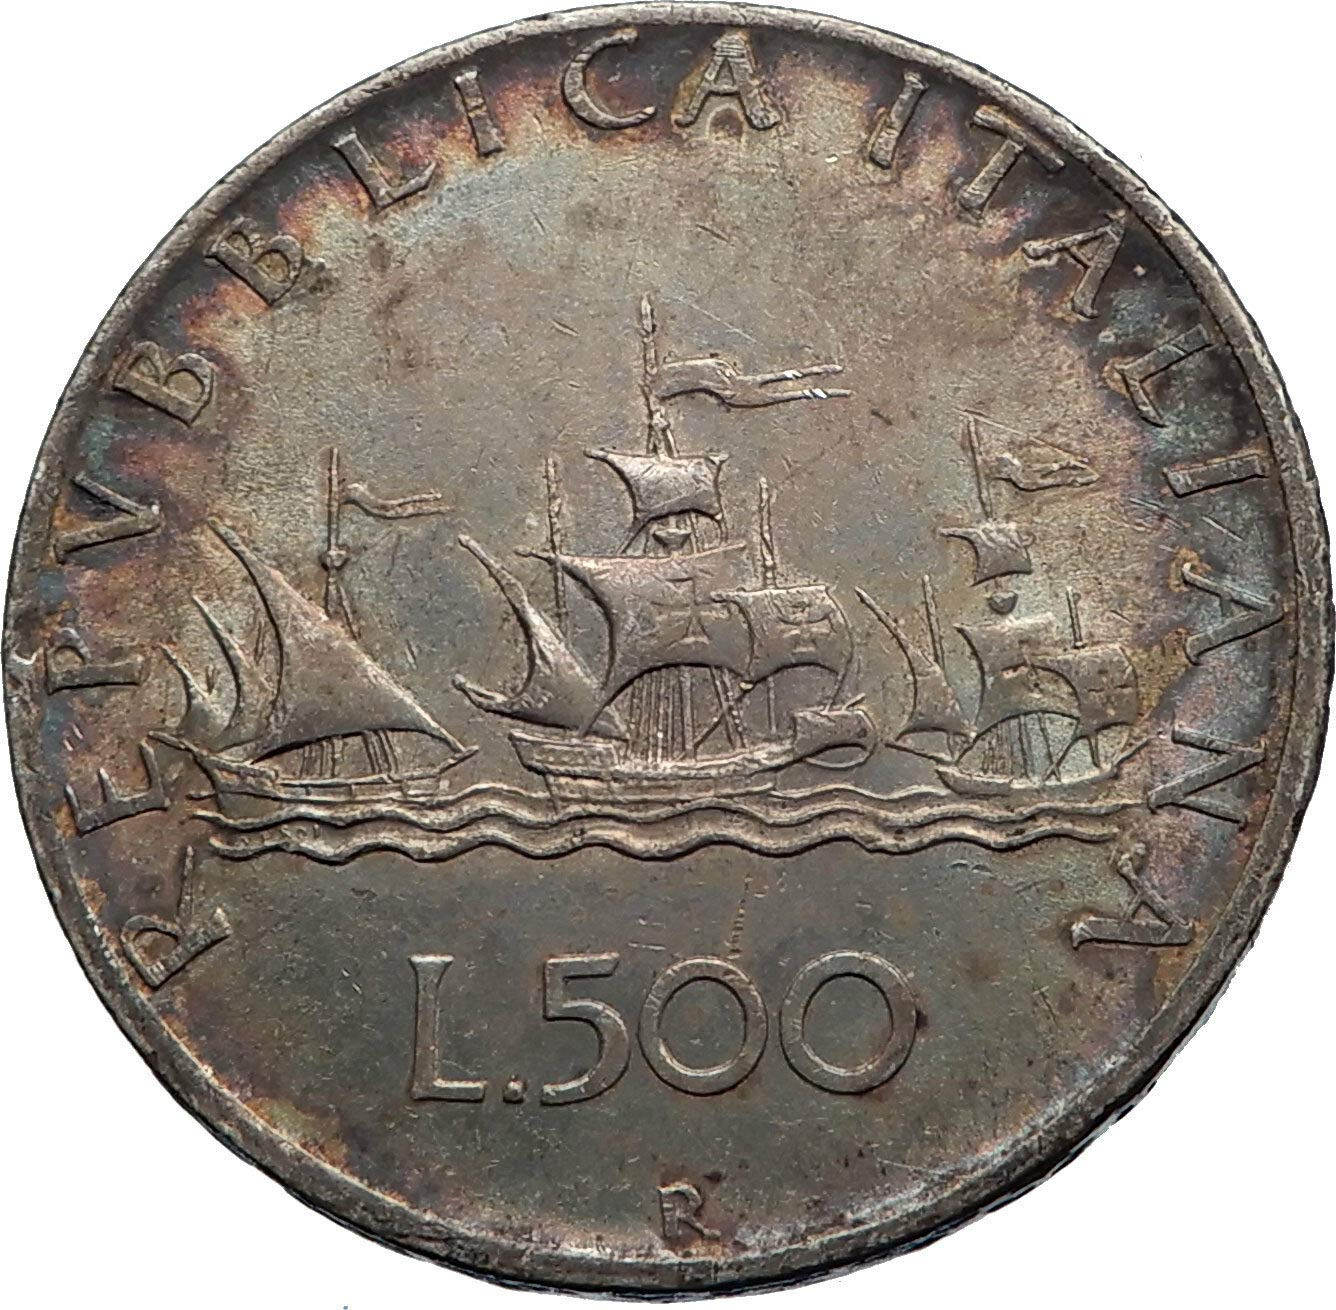 1958 IT 1958 ITALY - CHRISTOPHER COLUMBUS DISCOVER Americ ...